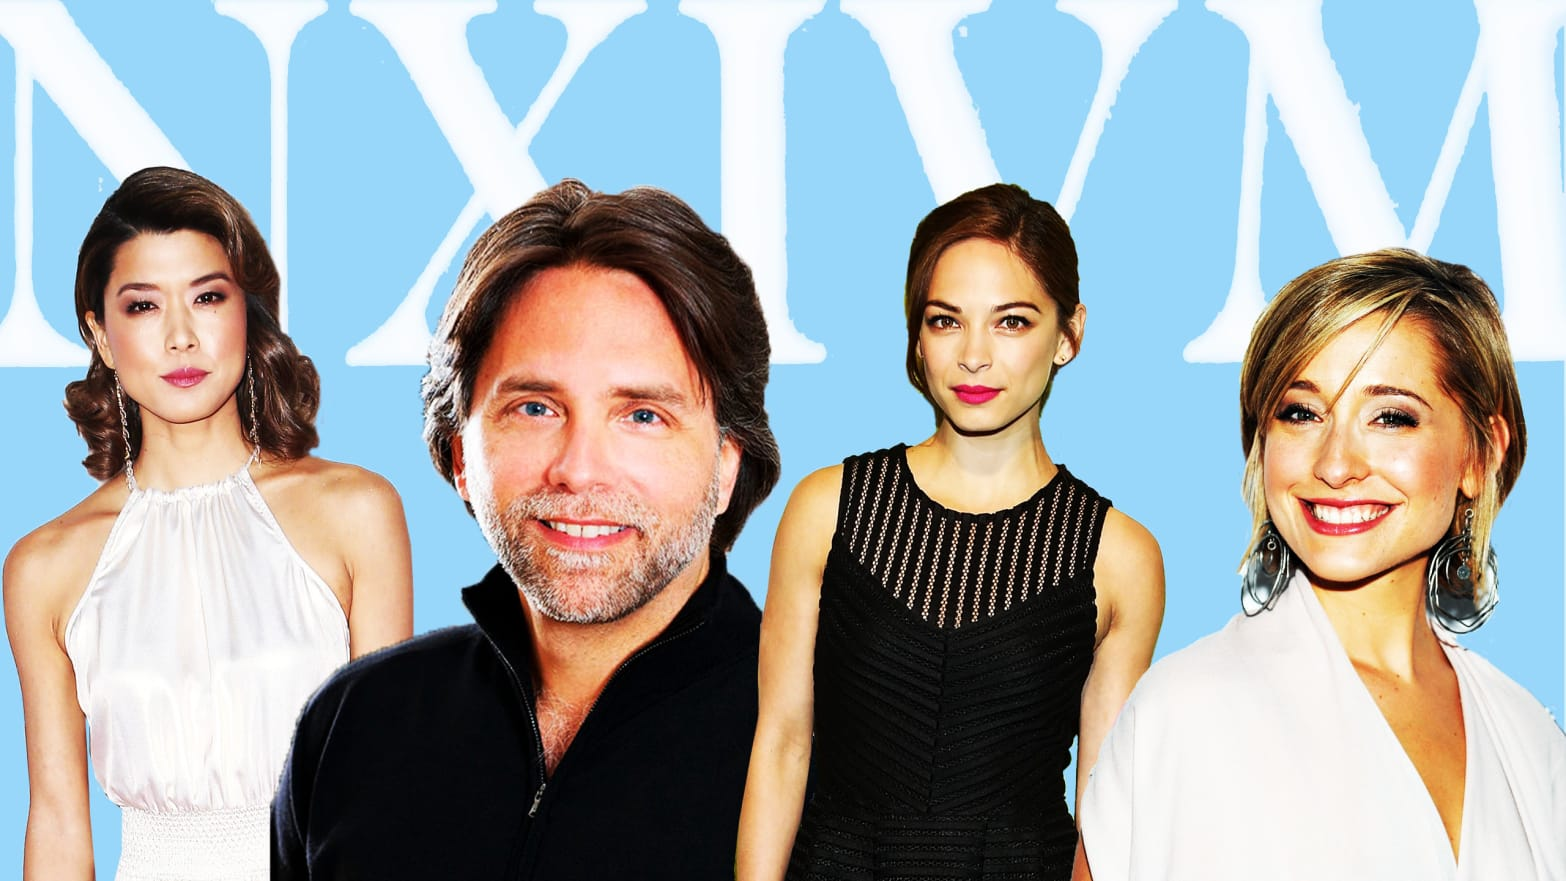 Allison Mack Tits the hollywood followers of nxivm, a women-branding sex cult